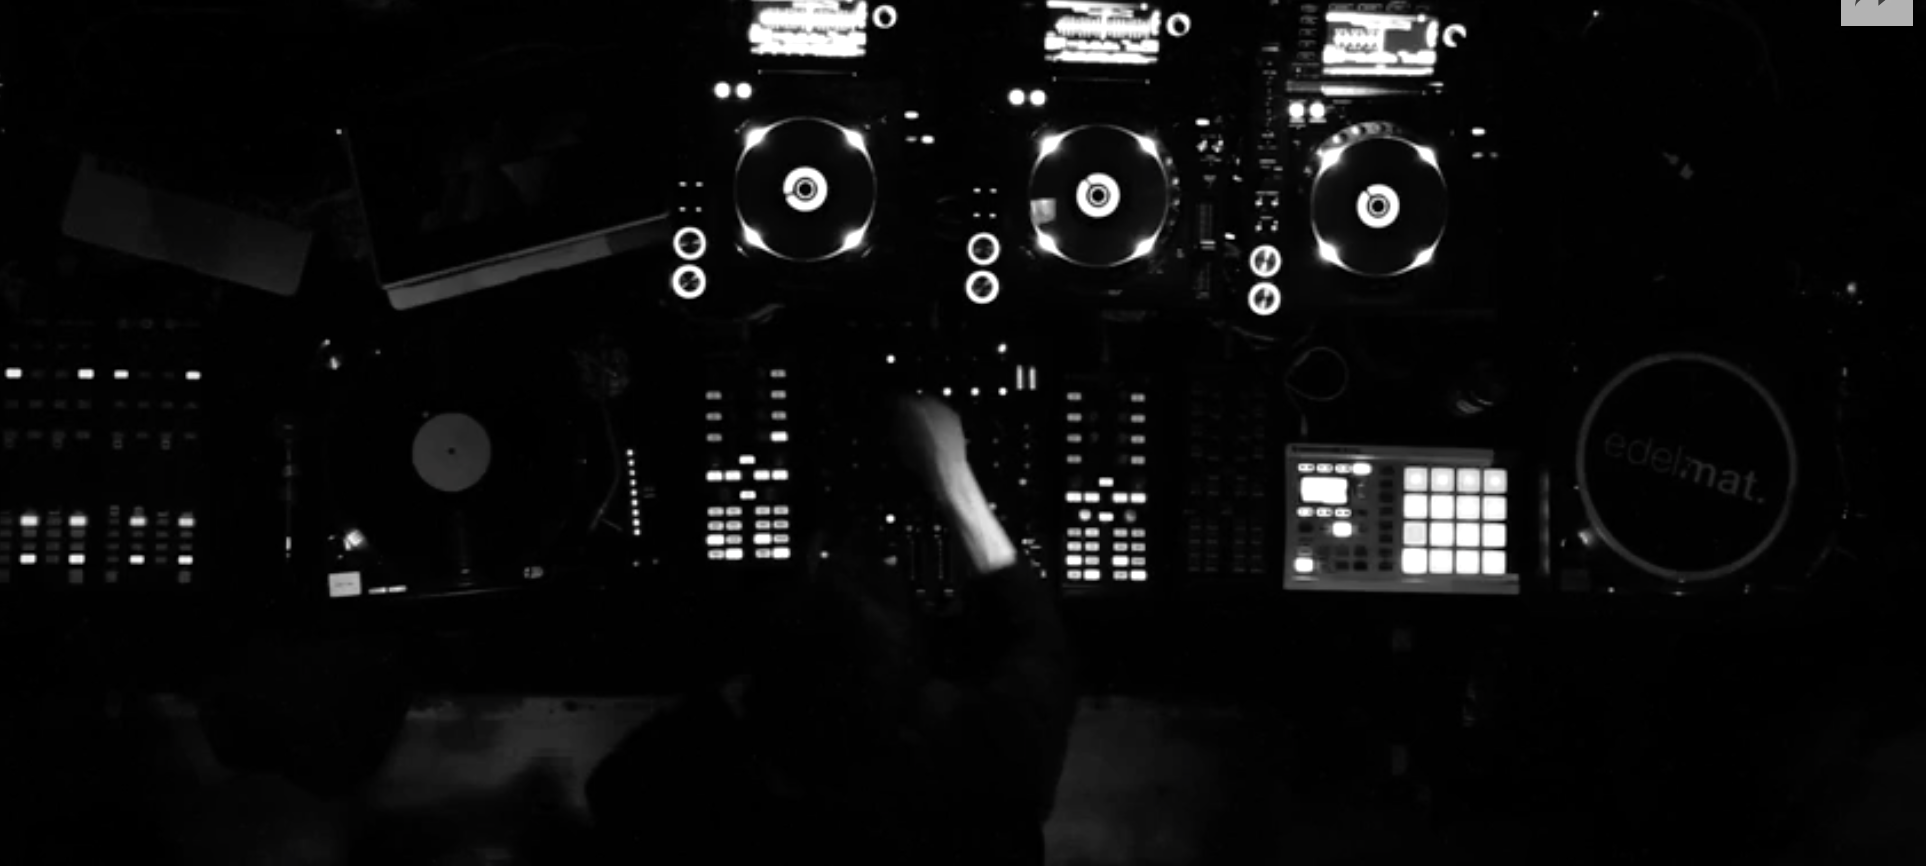 https://boilerroom.tv/session/playdifferently-richie-hawtin-friends/